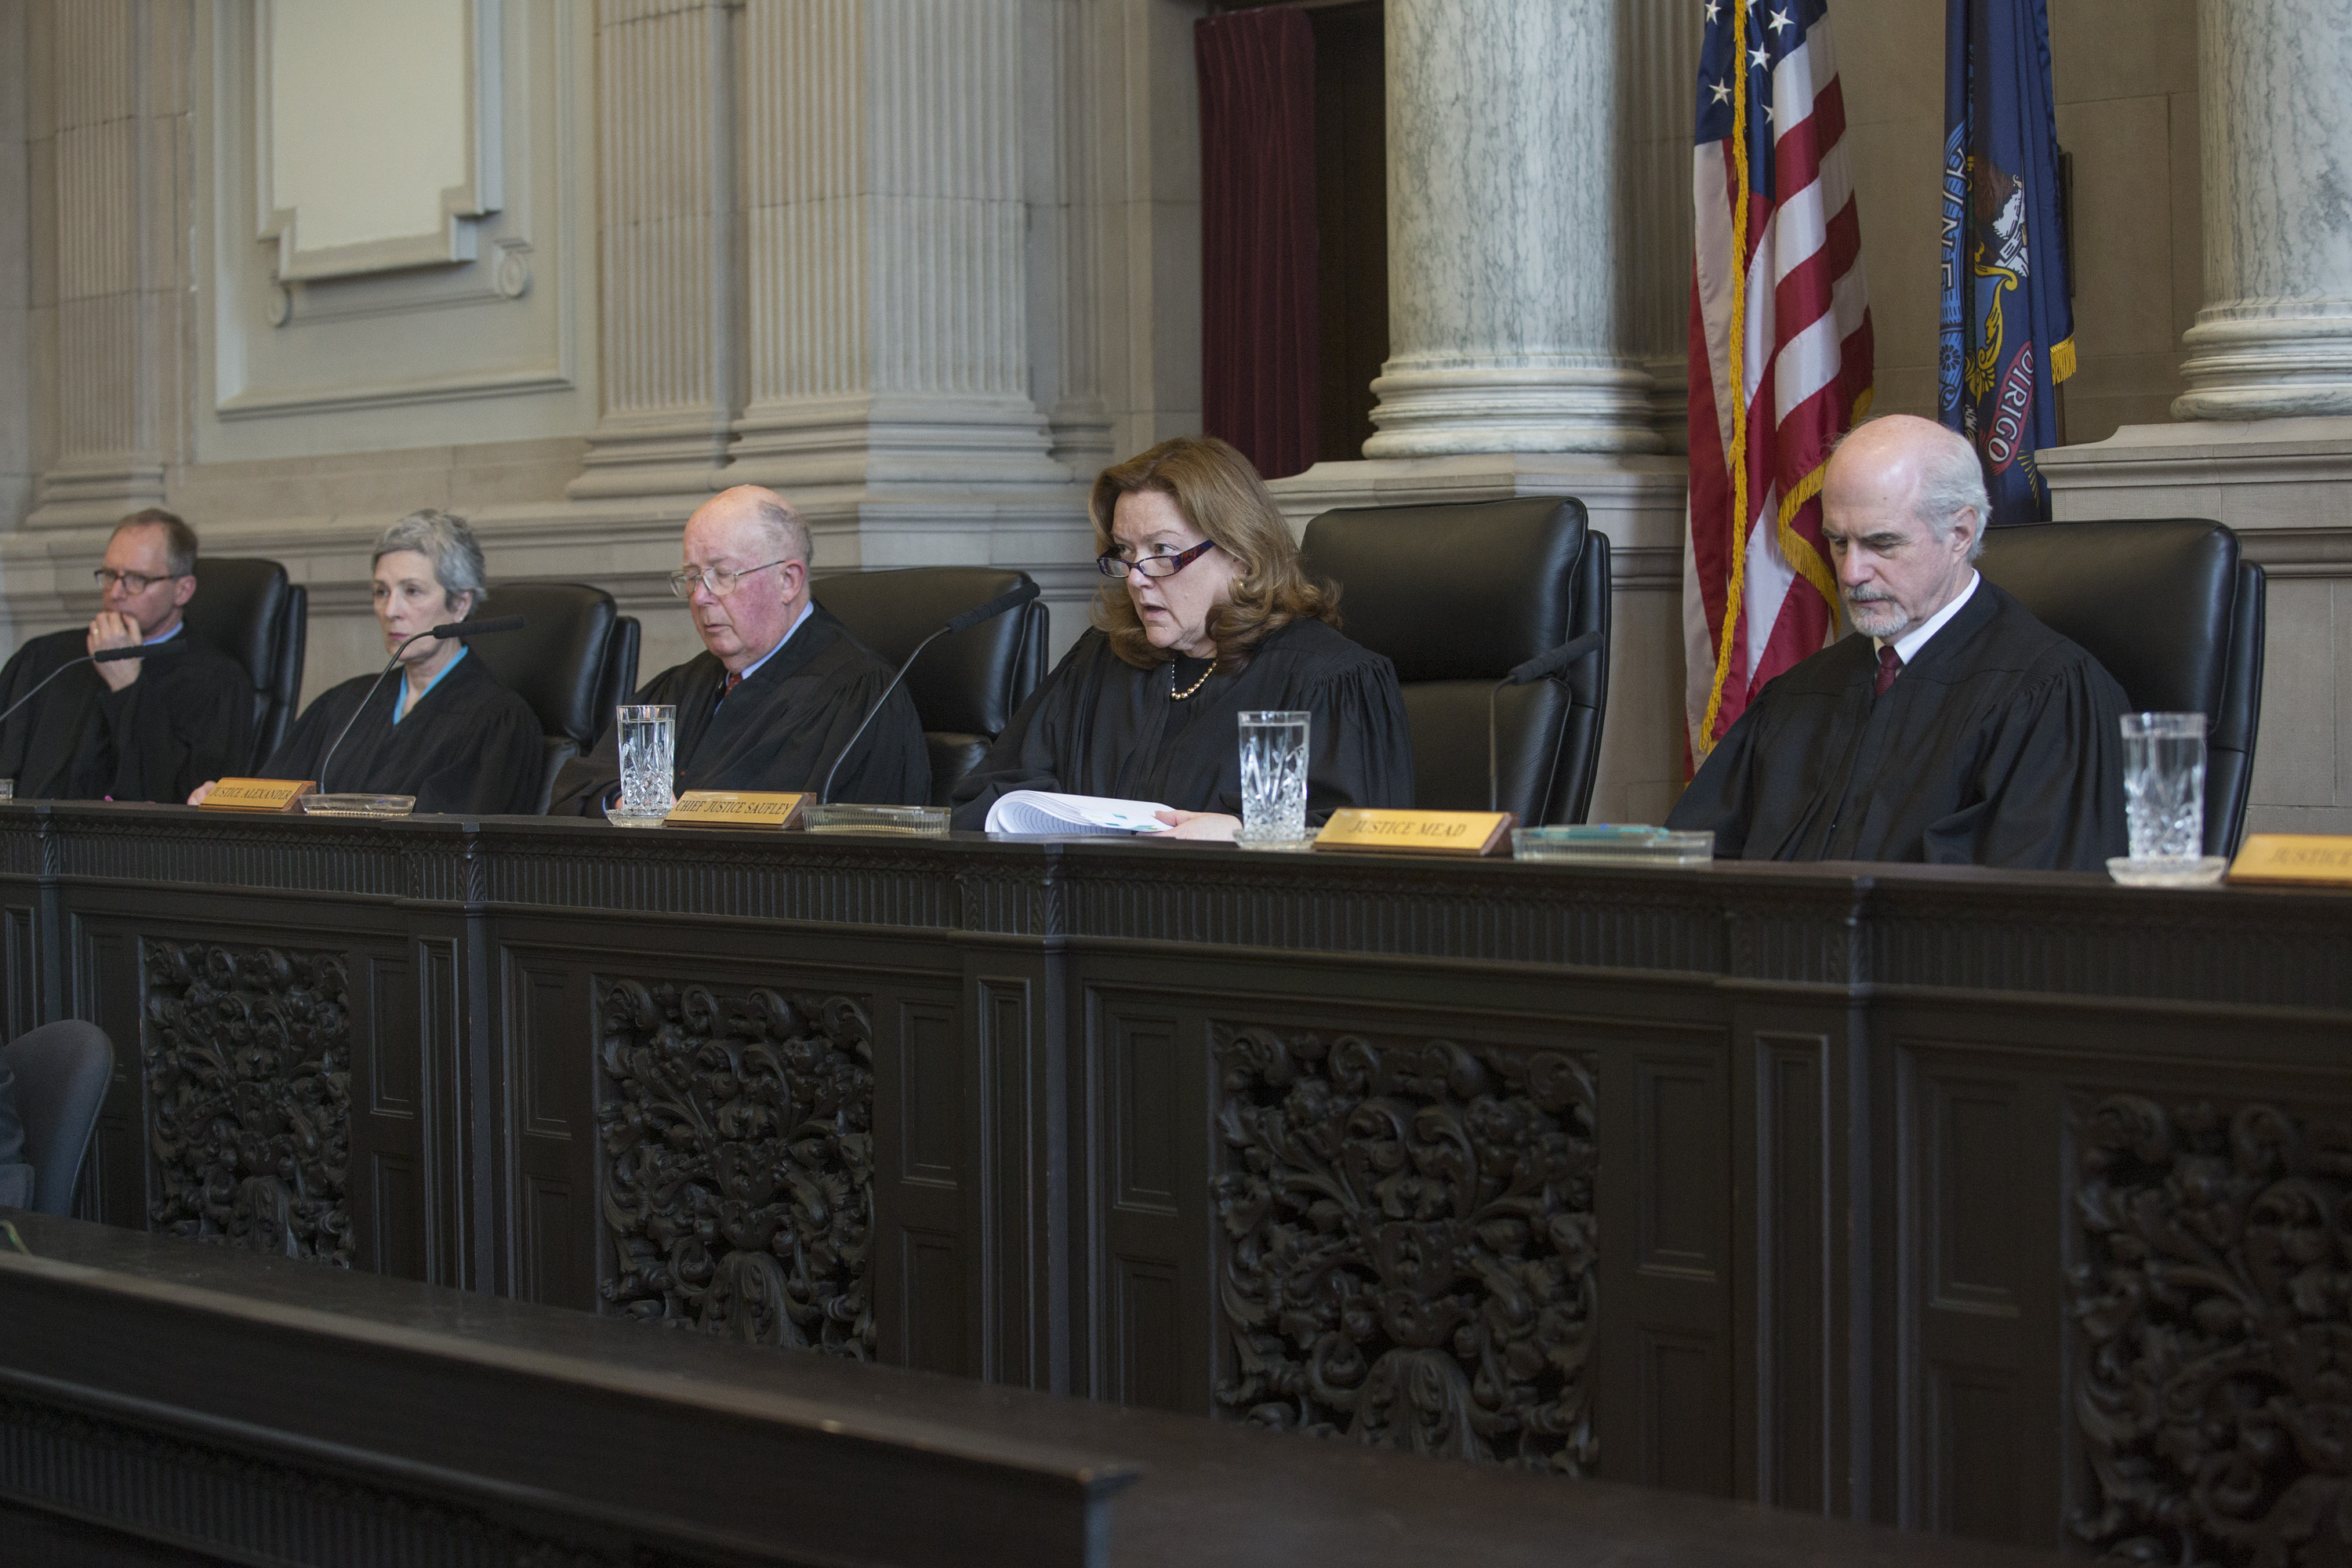 Maine Supreme Judicial Court ranked choice voting